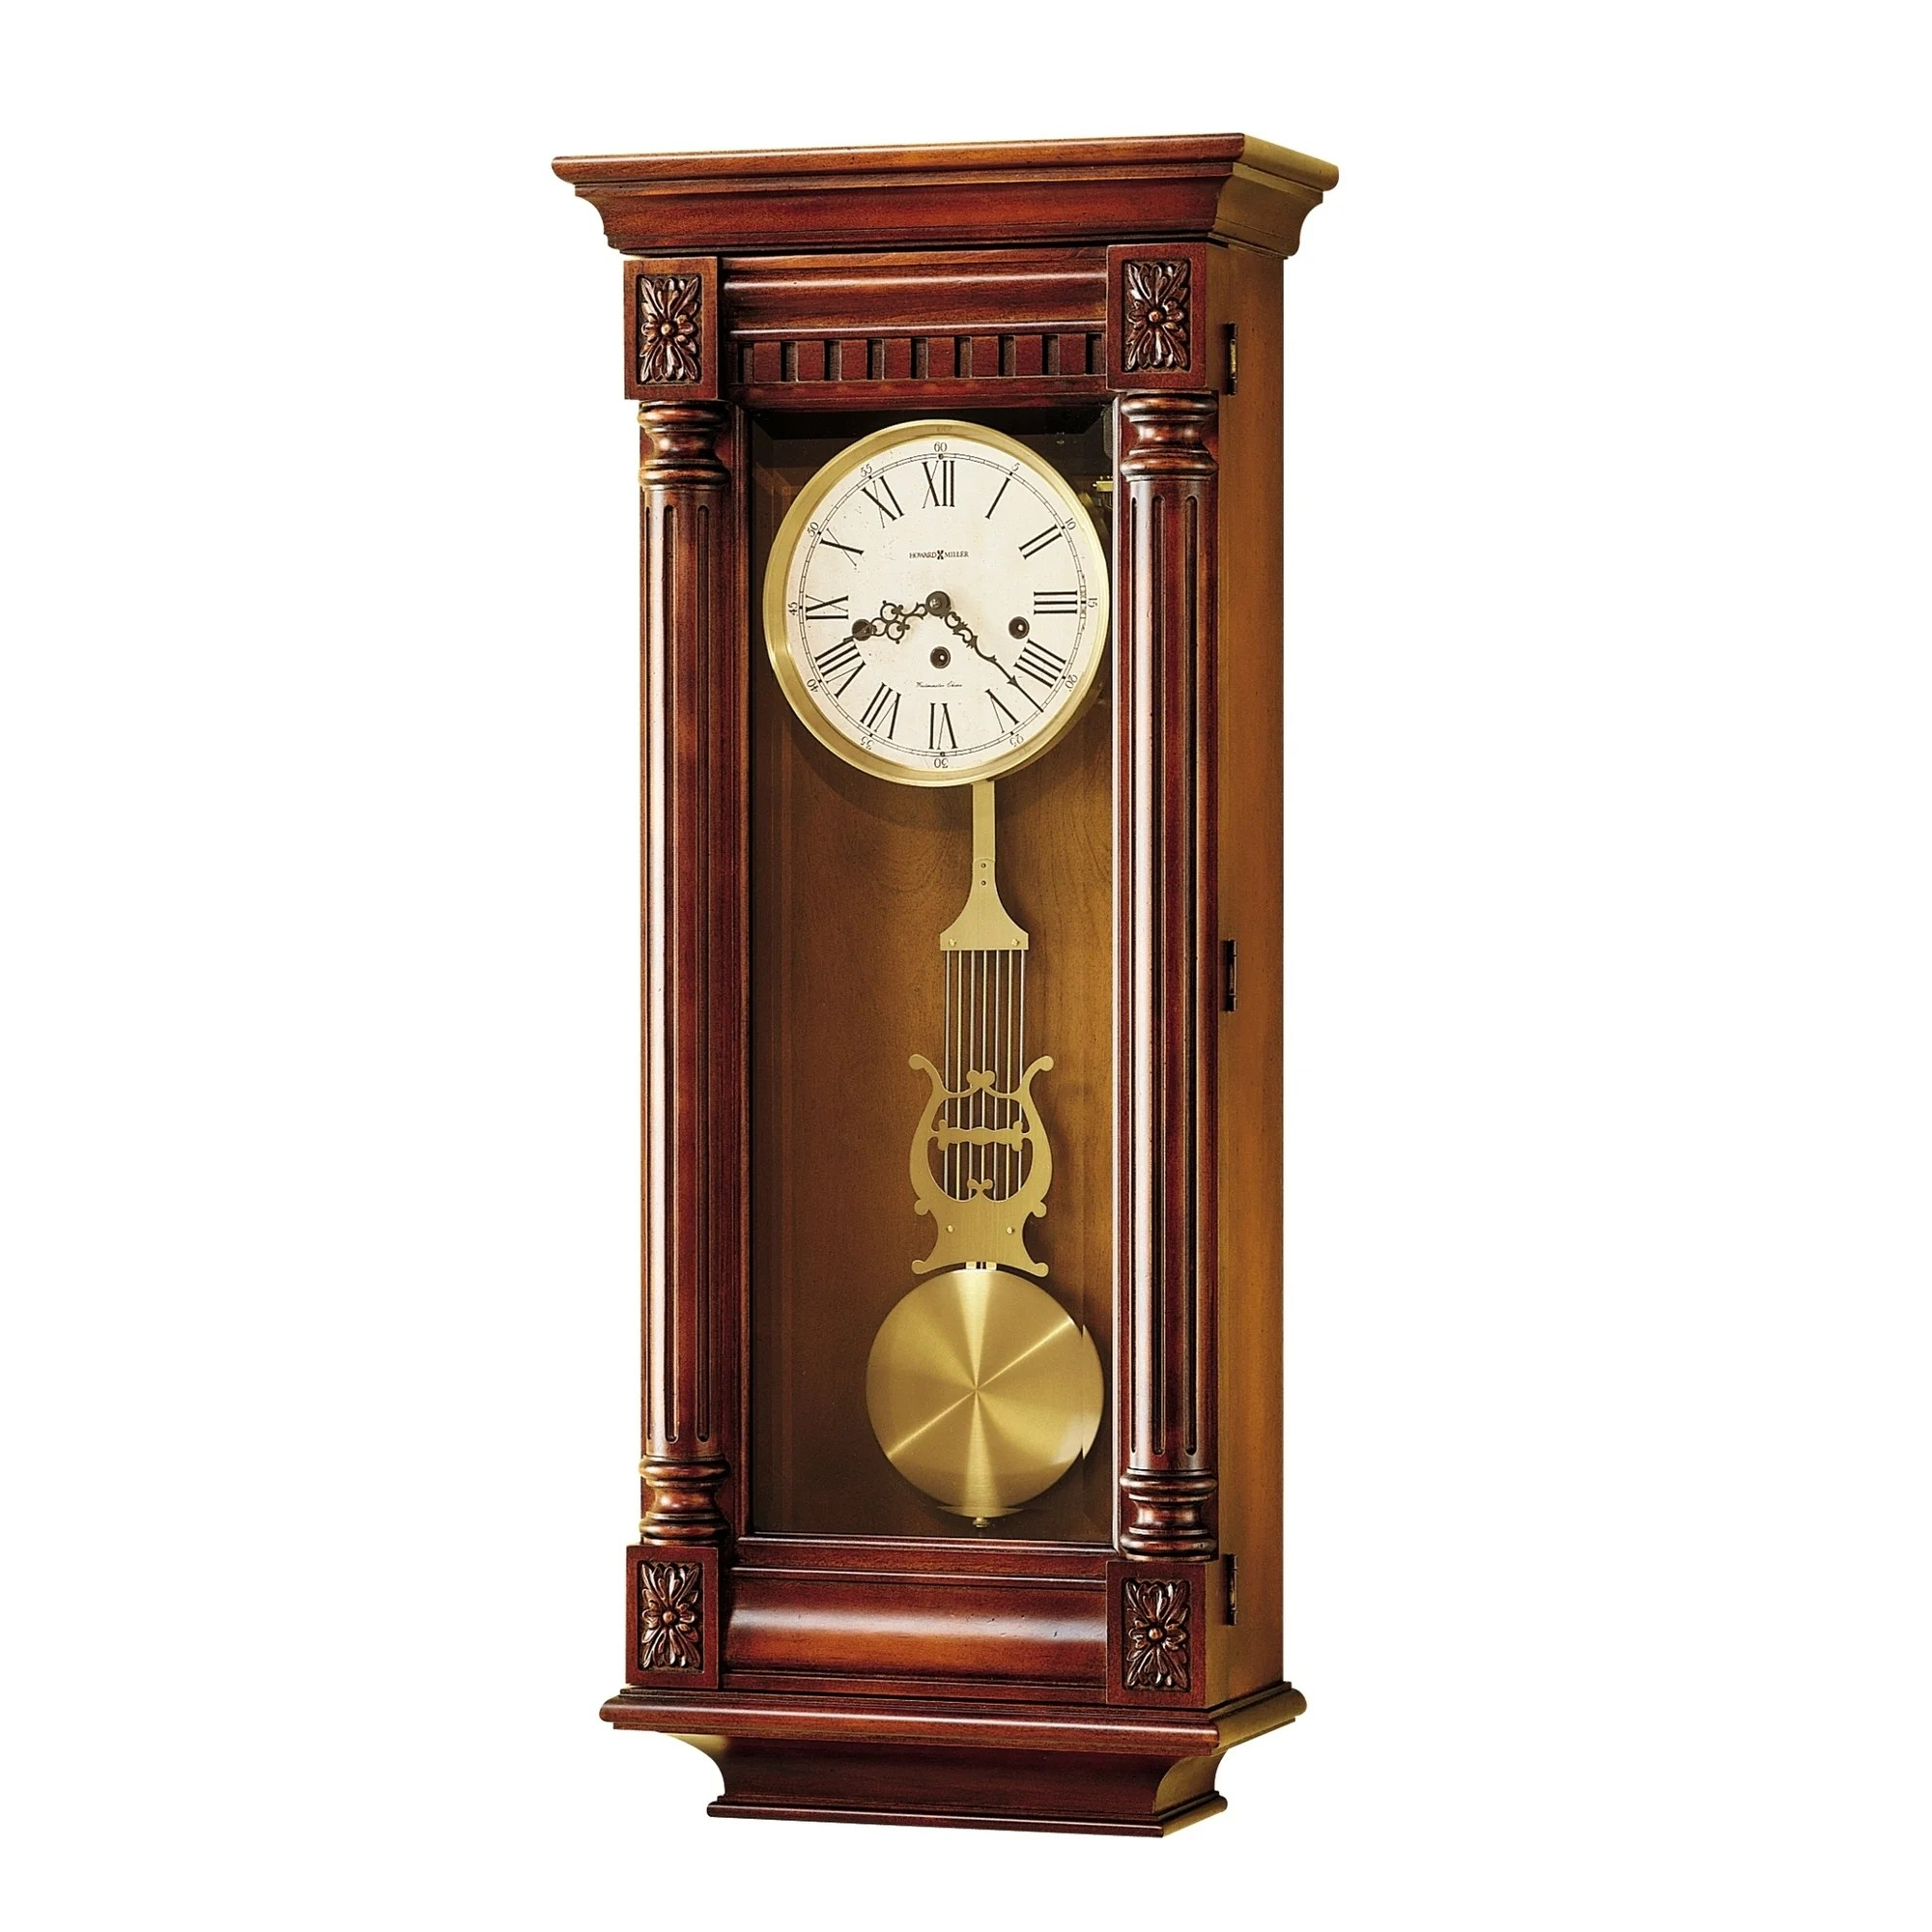 & Wall Clock Howard Miller New Haven Grandfather Clock Style Chiming Wall Clock With Pendulum Vintage Old World Classic Design